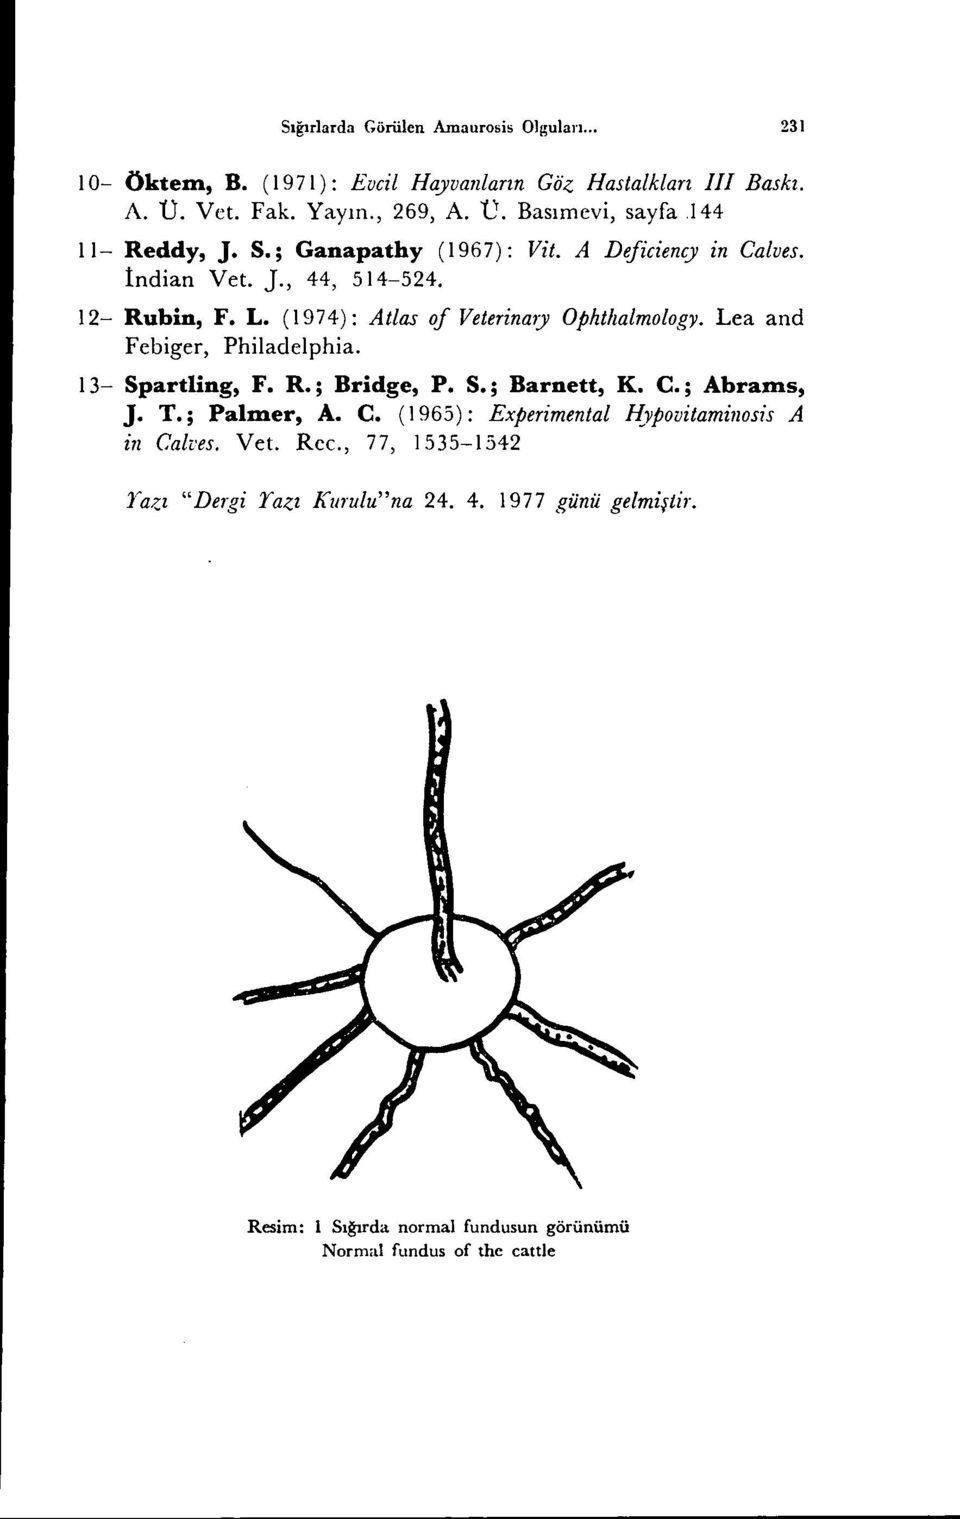 (1974): Atlas of Veterinaıy Ophthalmology. Lea and Febiger, Philadelphia. 13- Spartling, F. R.; Bridge, P. S.; Barnett, K. C.; Abrams, J. T.; Palmer, A. C. (1965): Experimental l!